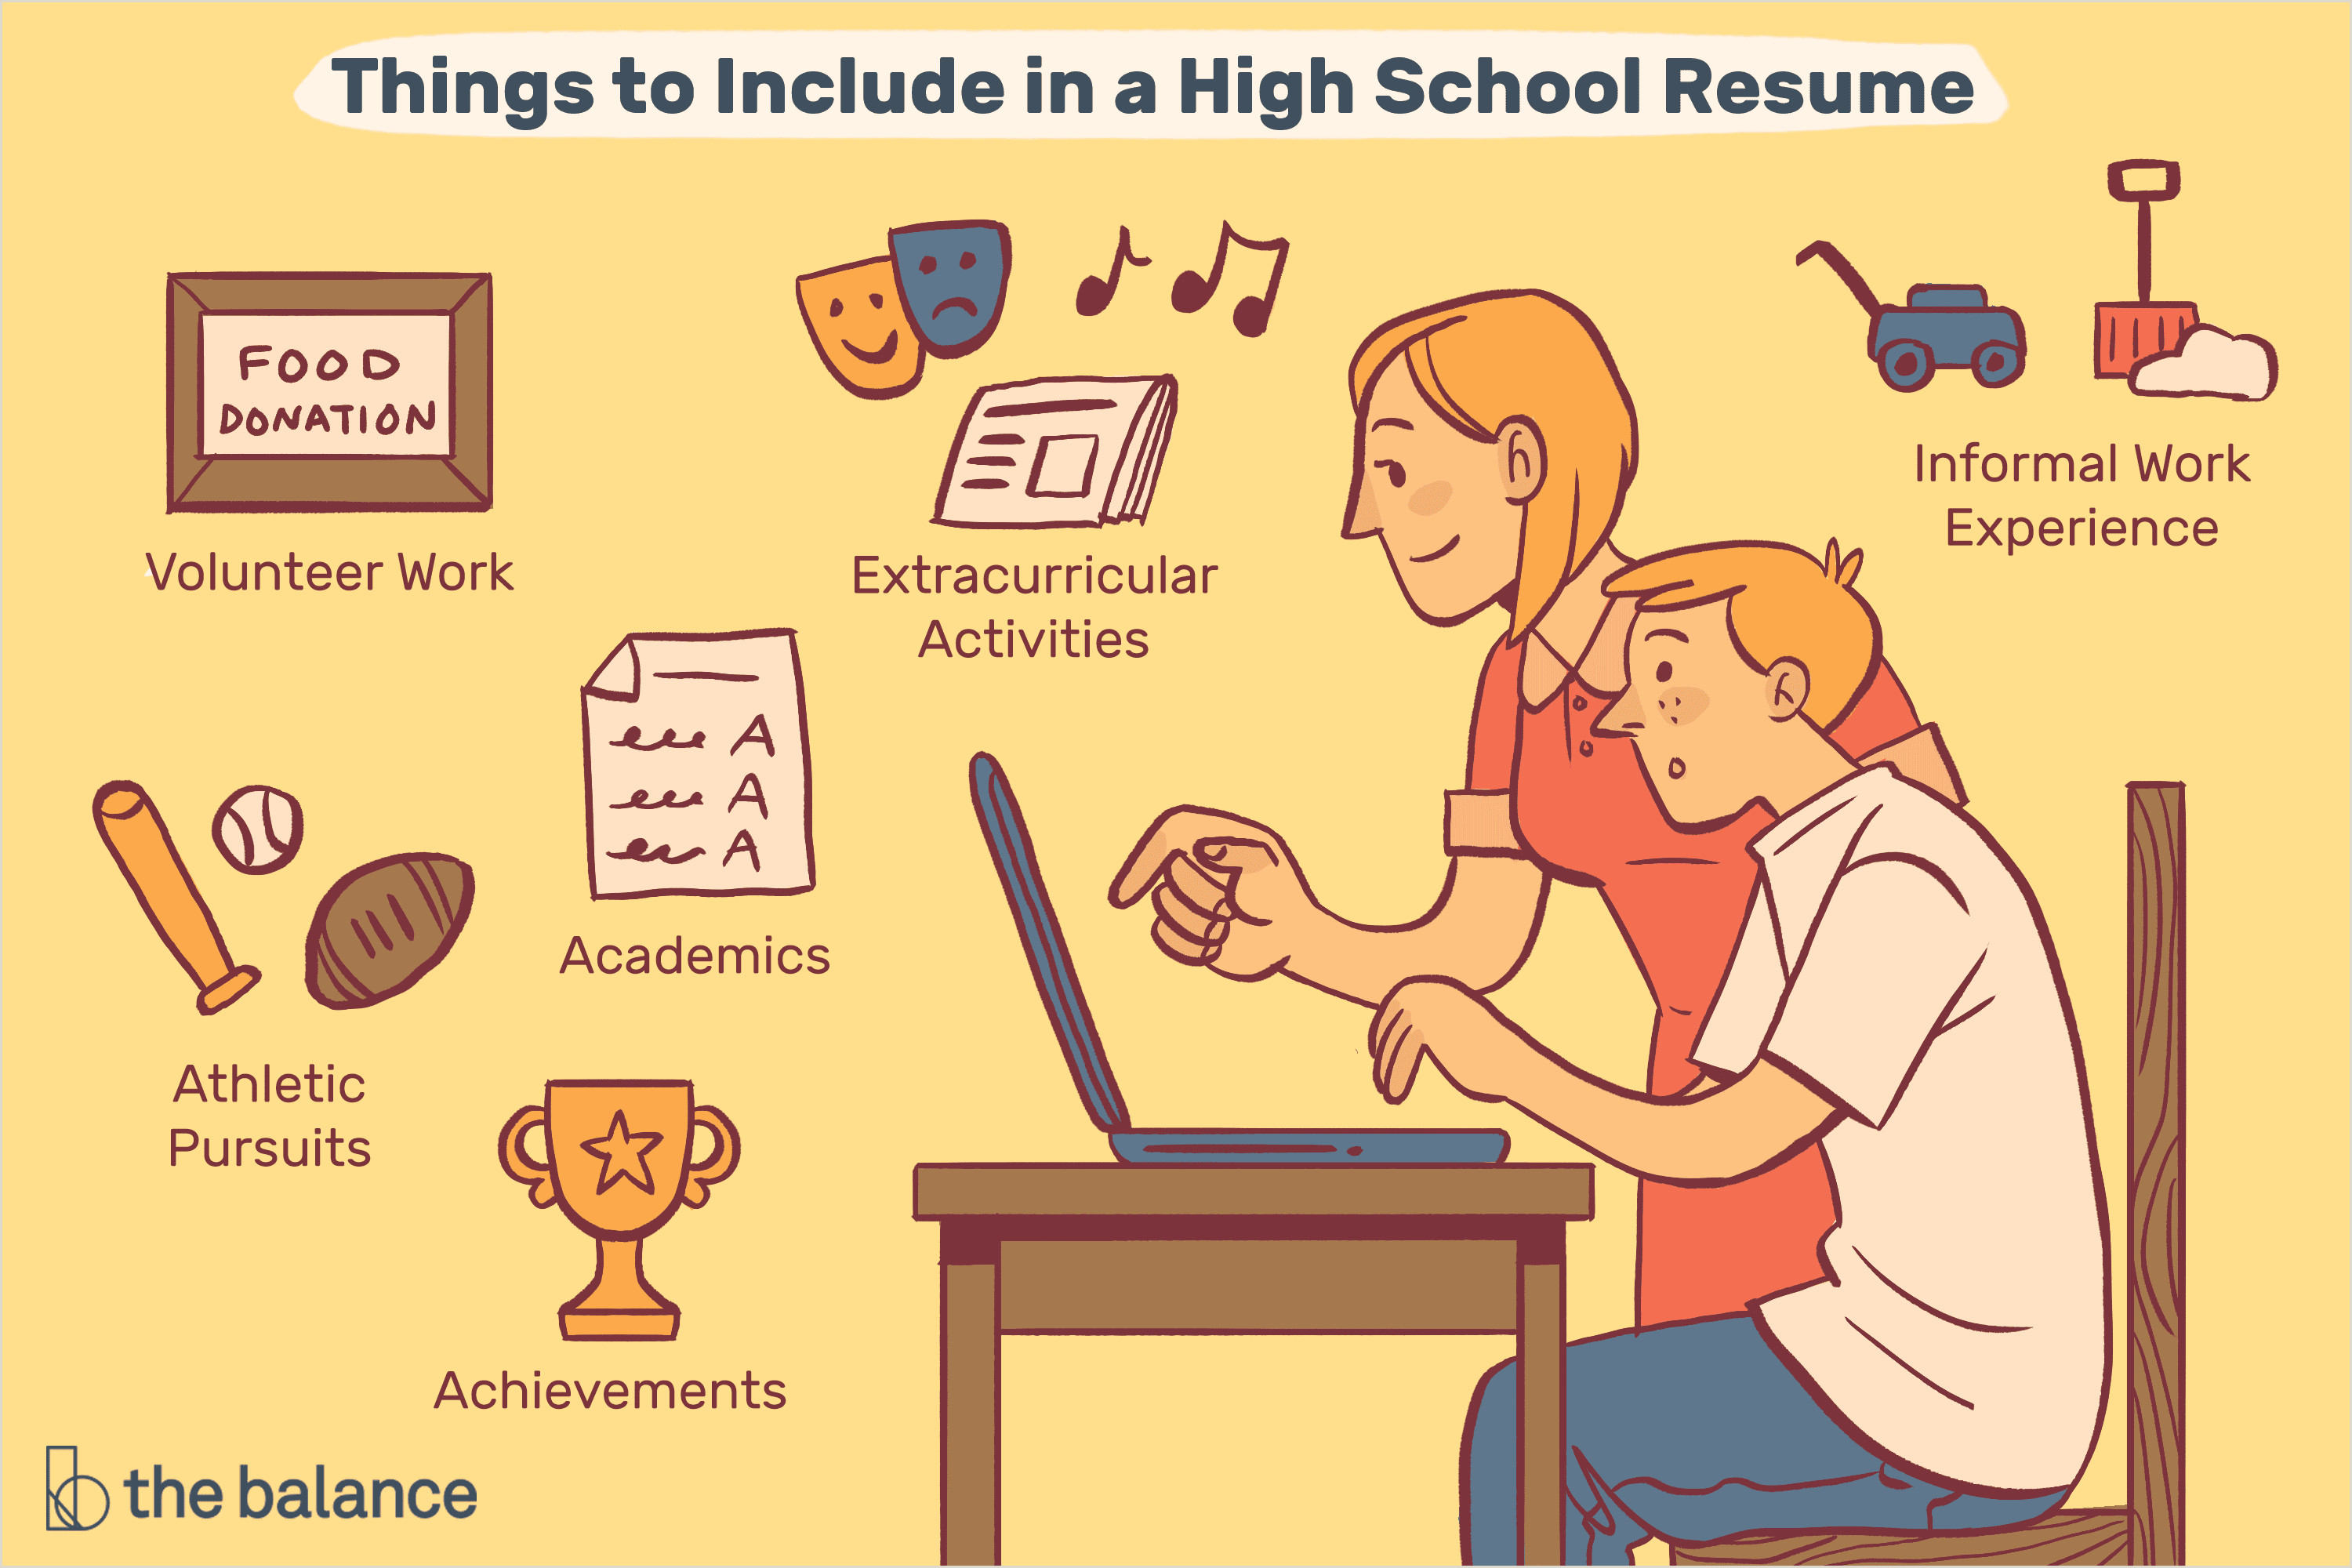 Professional Cv format Australia High School Resume Examples and Writing Tips